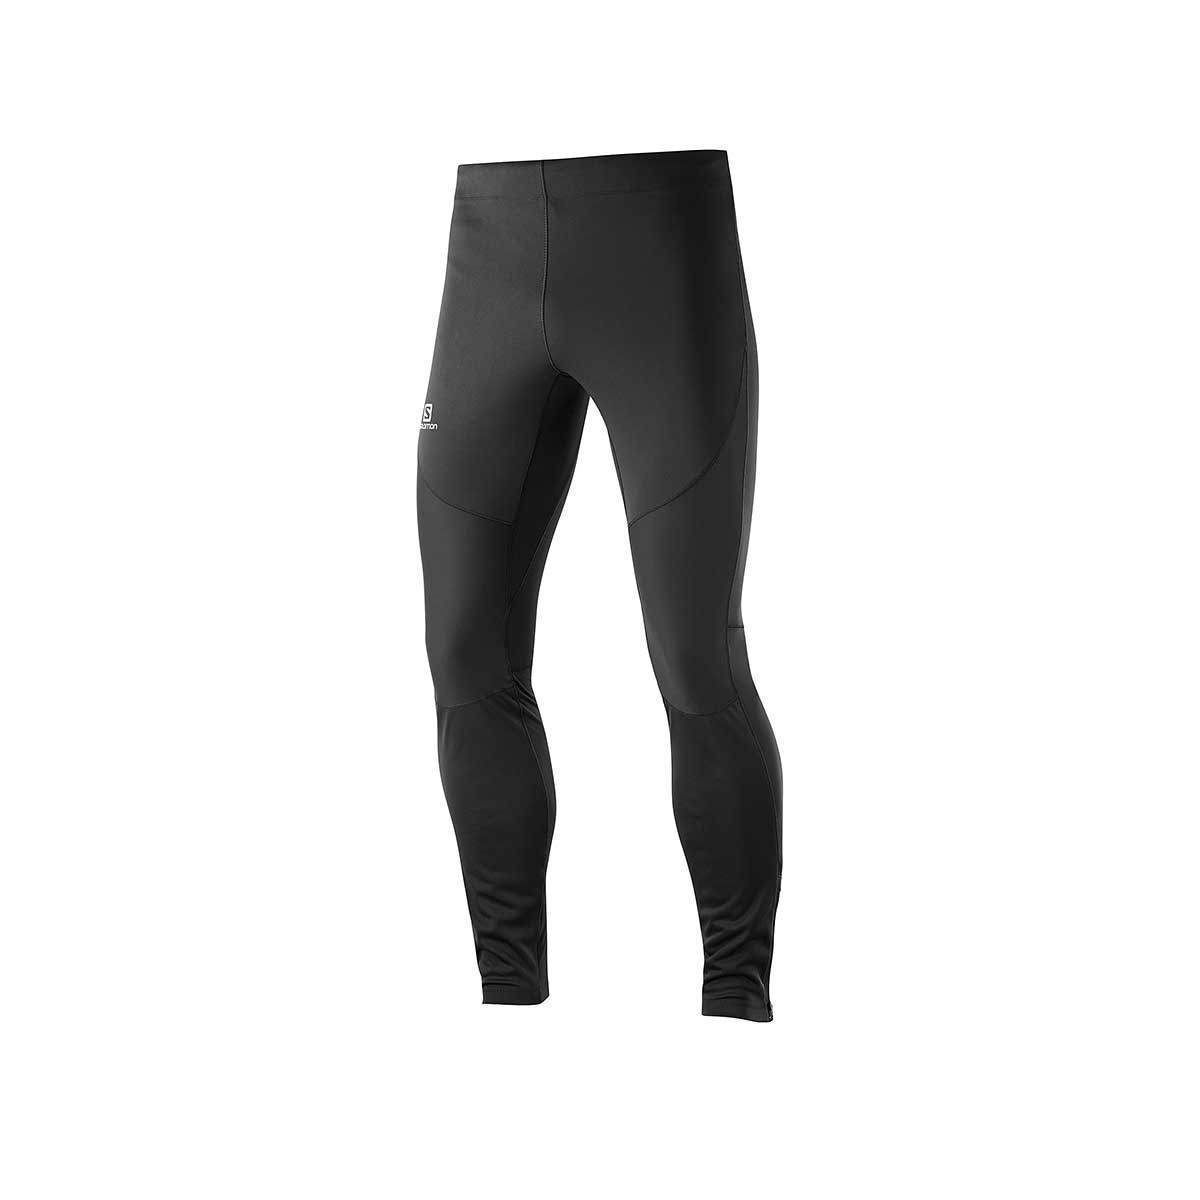 Salomon Men's Trail Runner WS Tight in Black